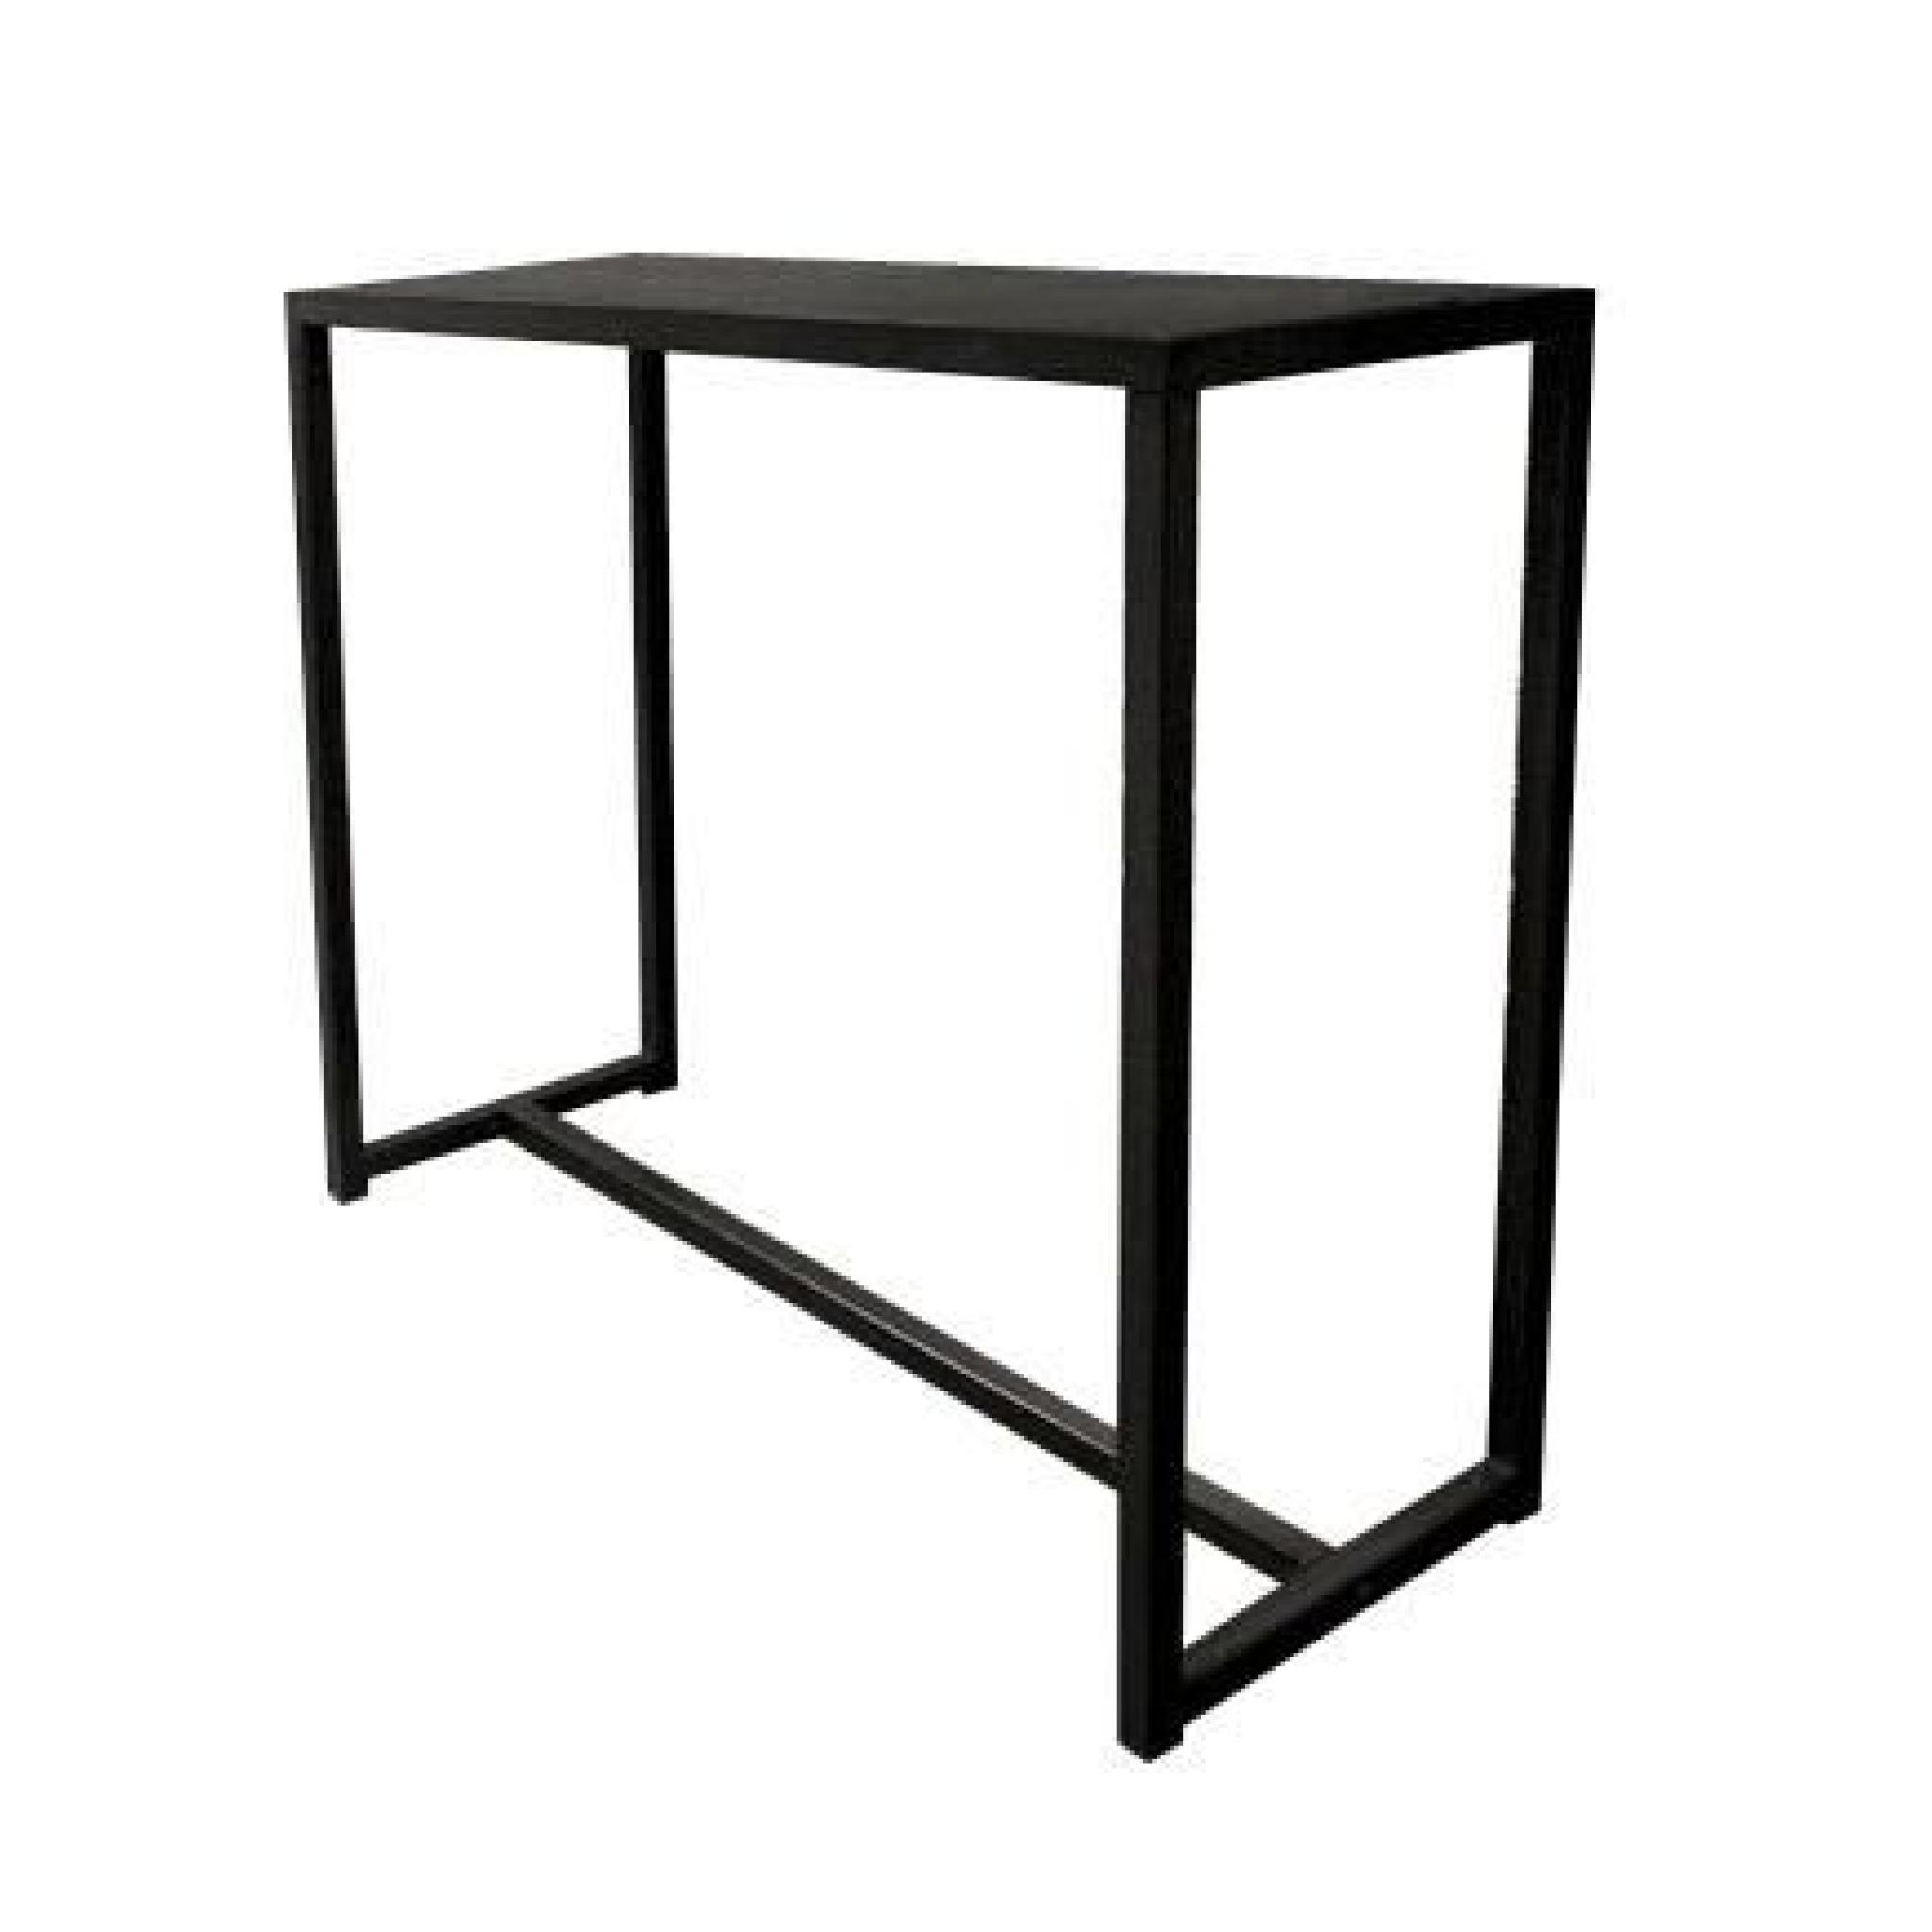 miliboo console industrielle en m tal et b to achat vente console meuble pas cher couleur. Black Bedroom Furniture Sets. Home Design Ideas